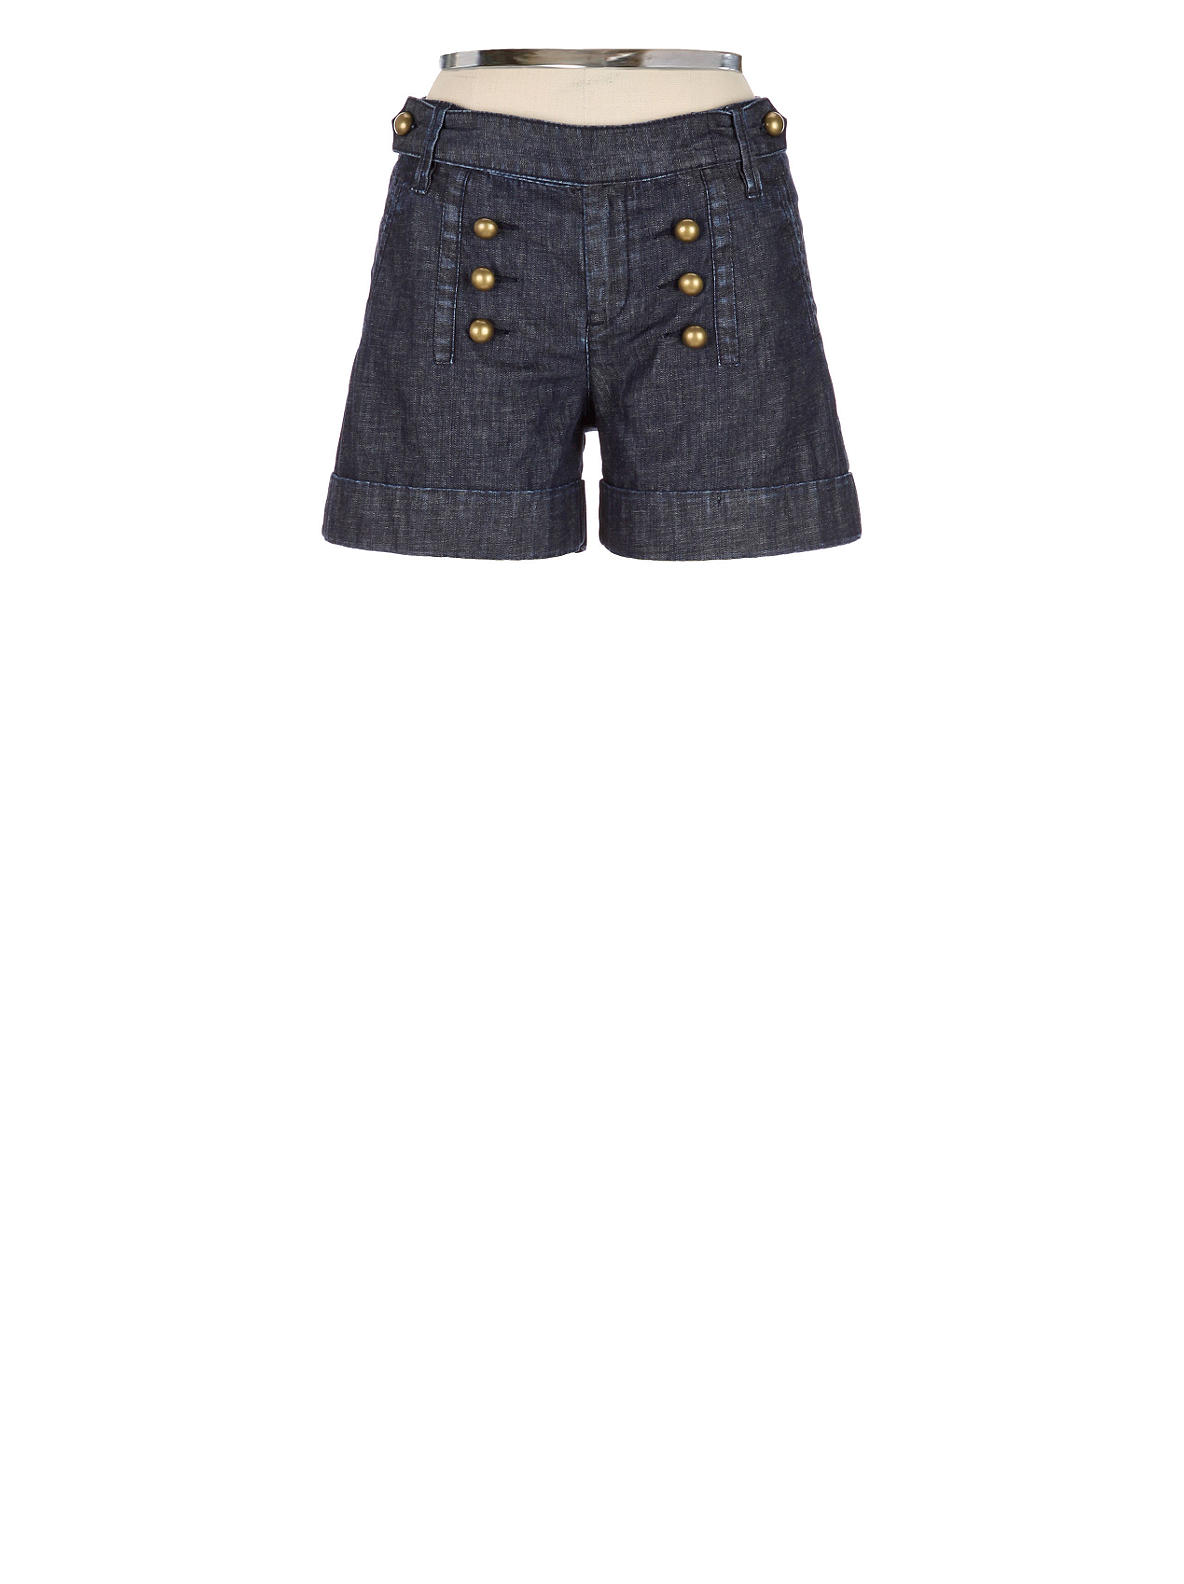 Steadfast Sailor Shorts - Anthropologie.com